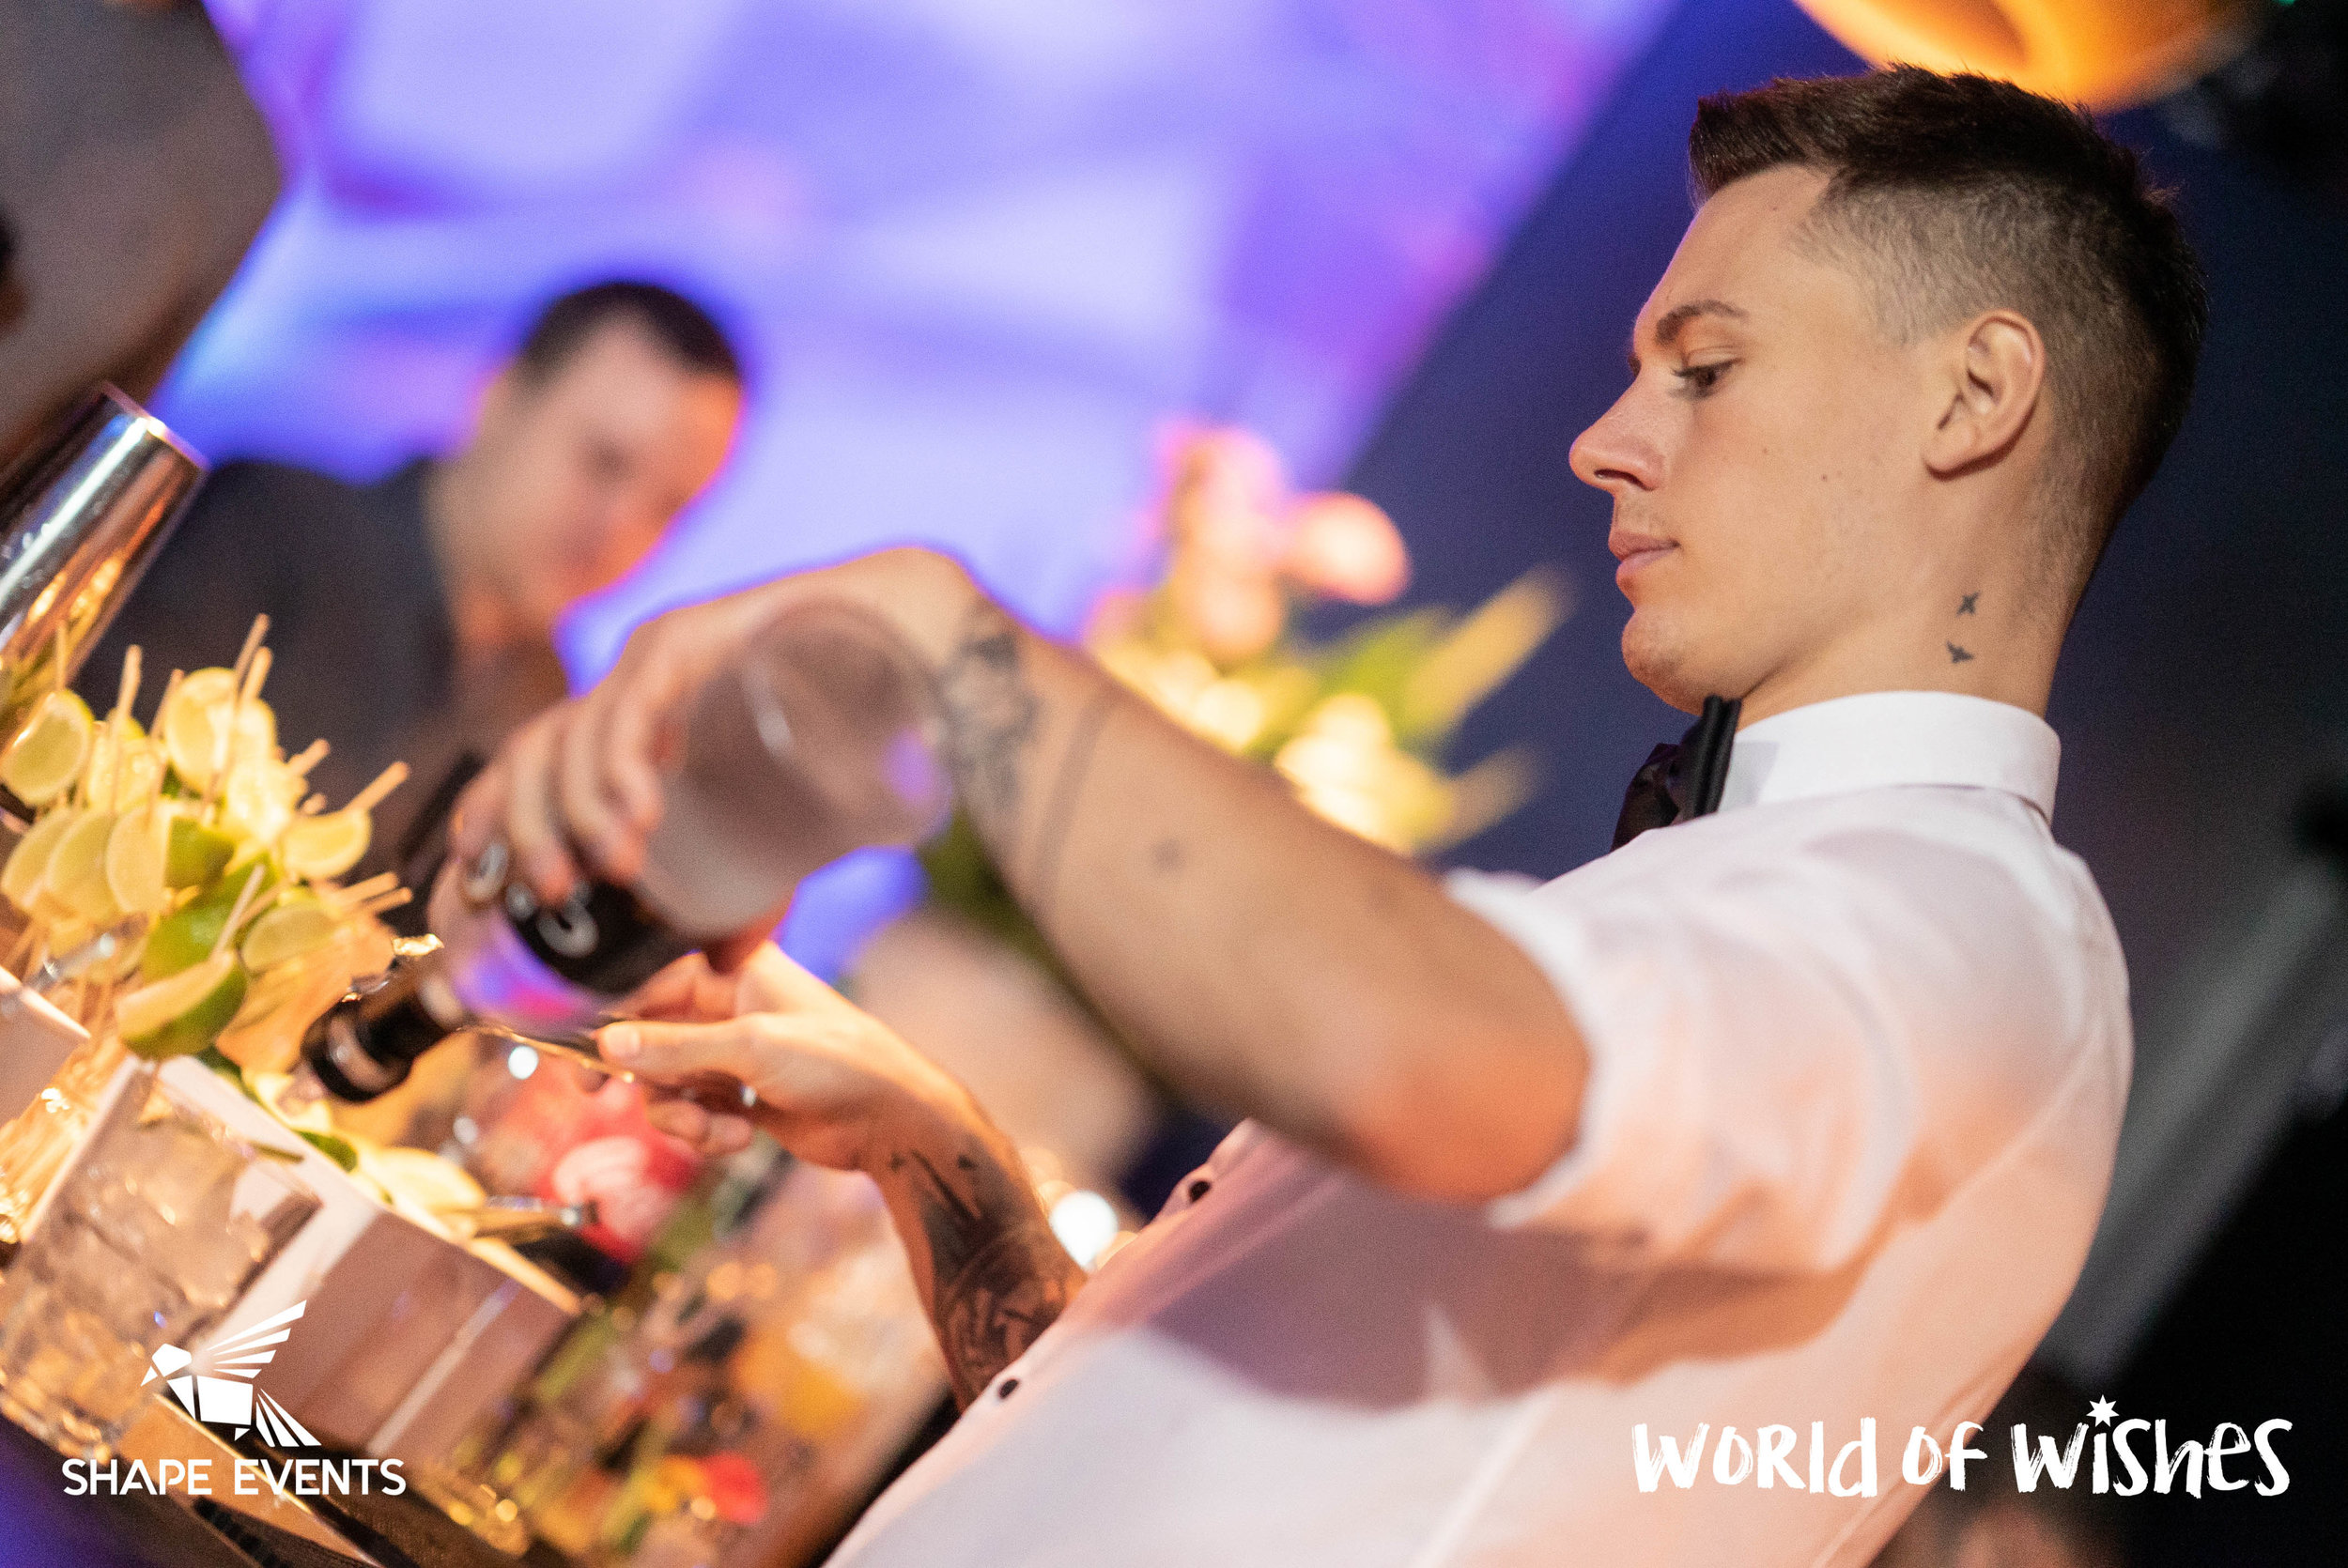 WordOfWishes_Party_Guest-01950.jpg